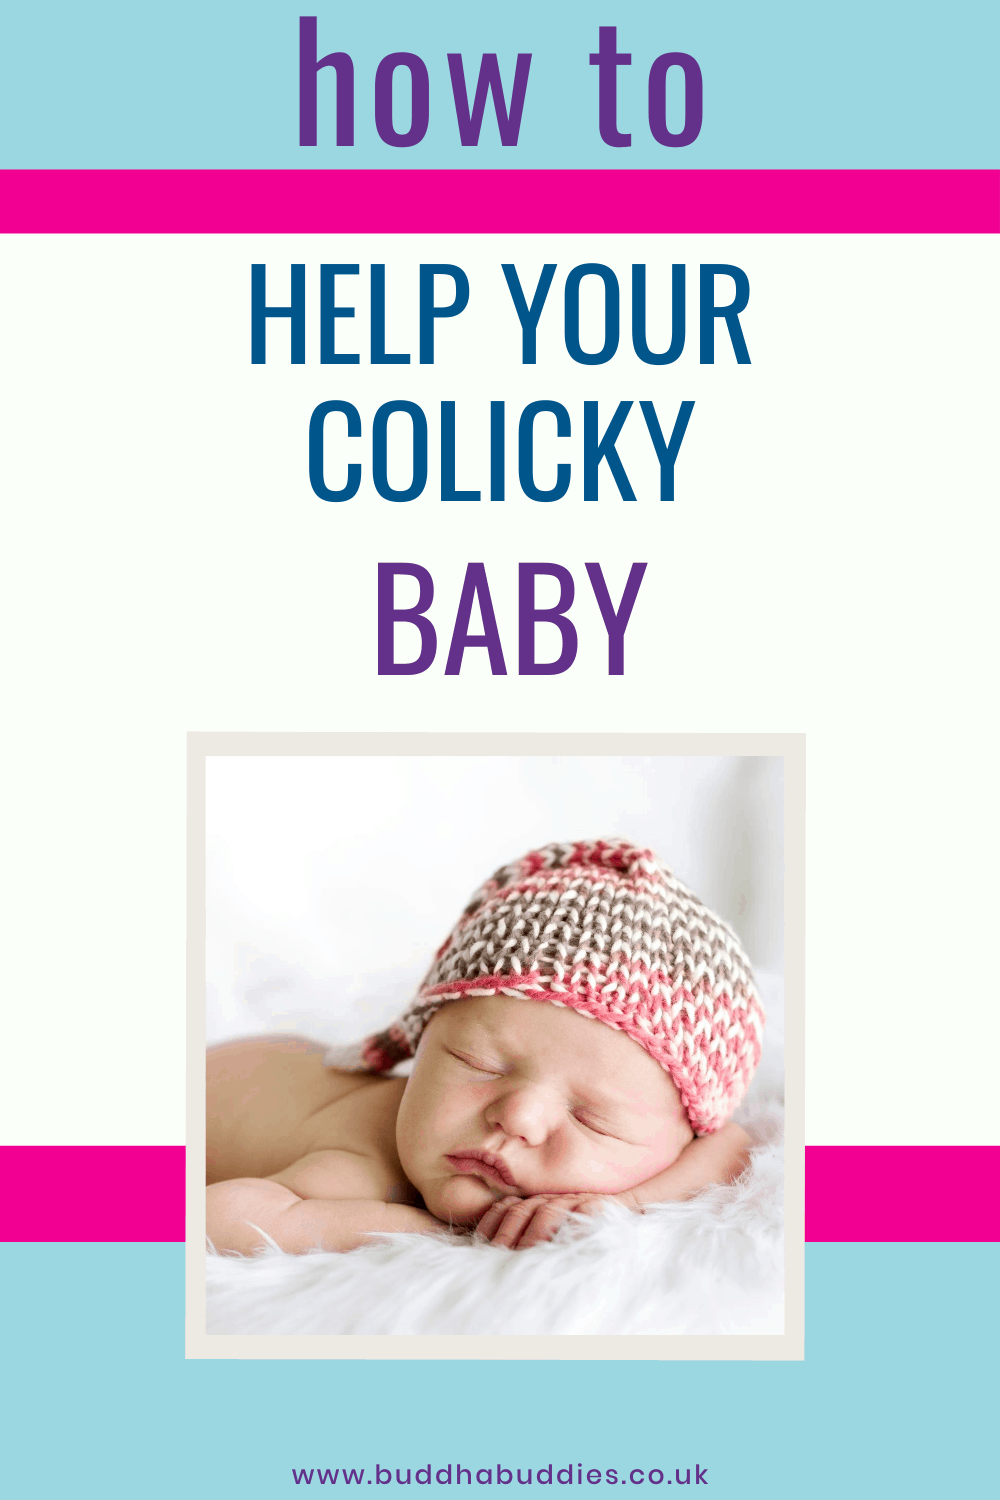 Colic - 6 Colic Remedies To Help Your Baby